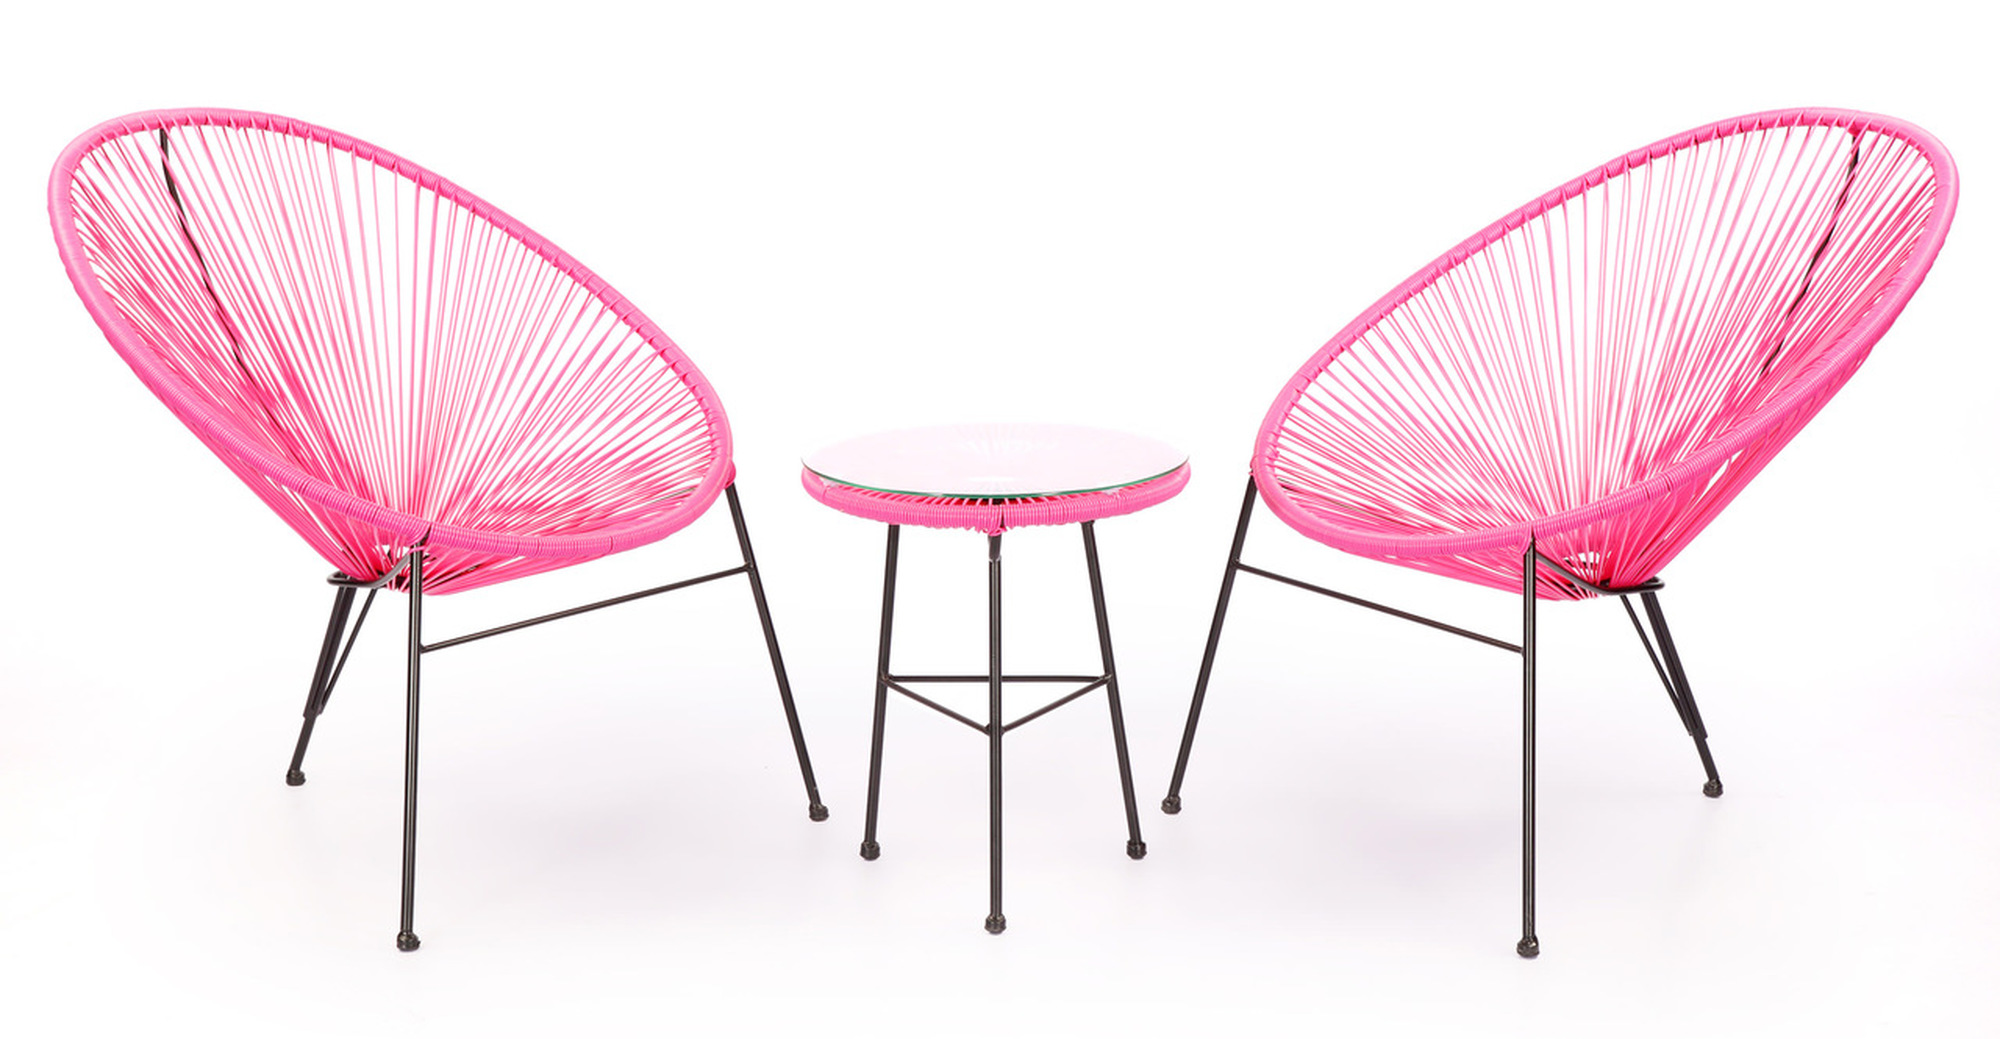 Acapulco Chairs & Table, Pink